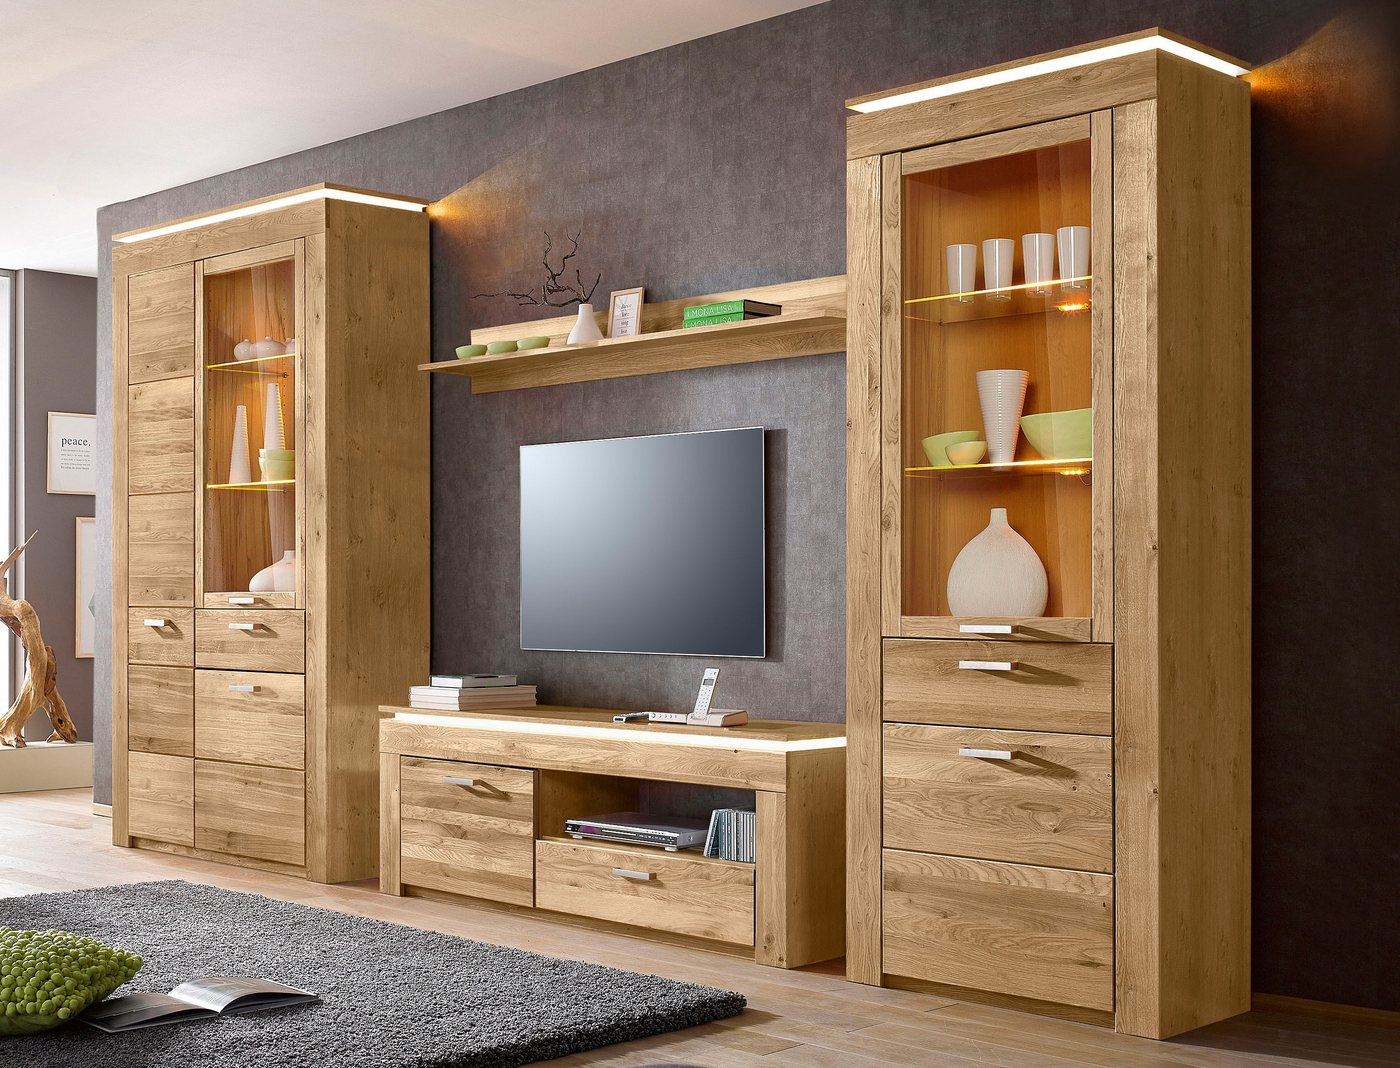 lowboard wildeiche massiv preisvergleiche. Black Bedroom Furniture Sets. Home Design Ideas